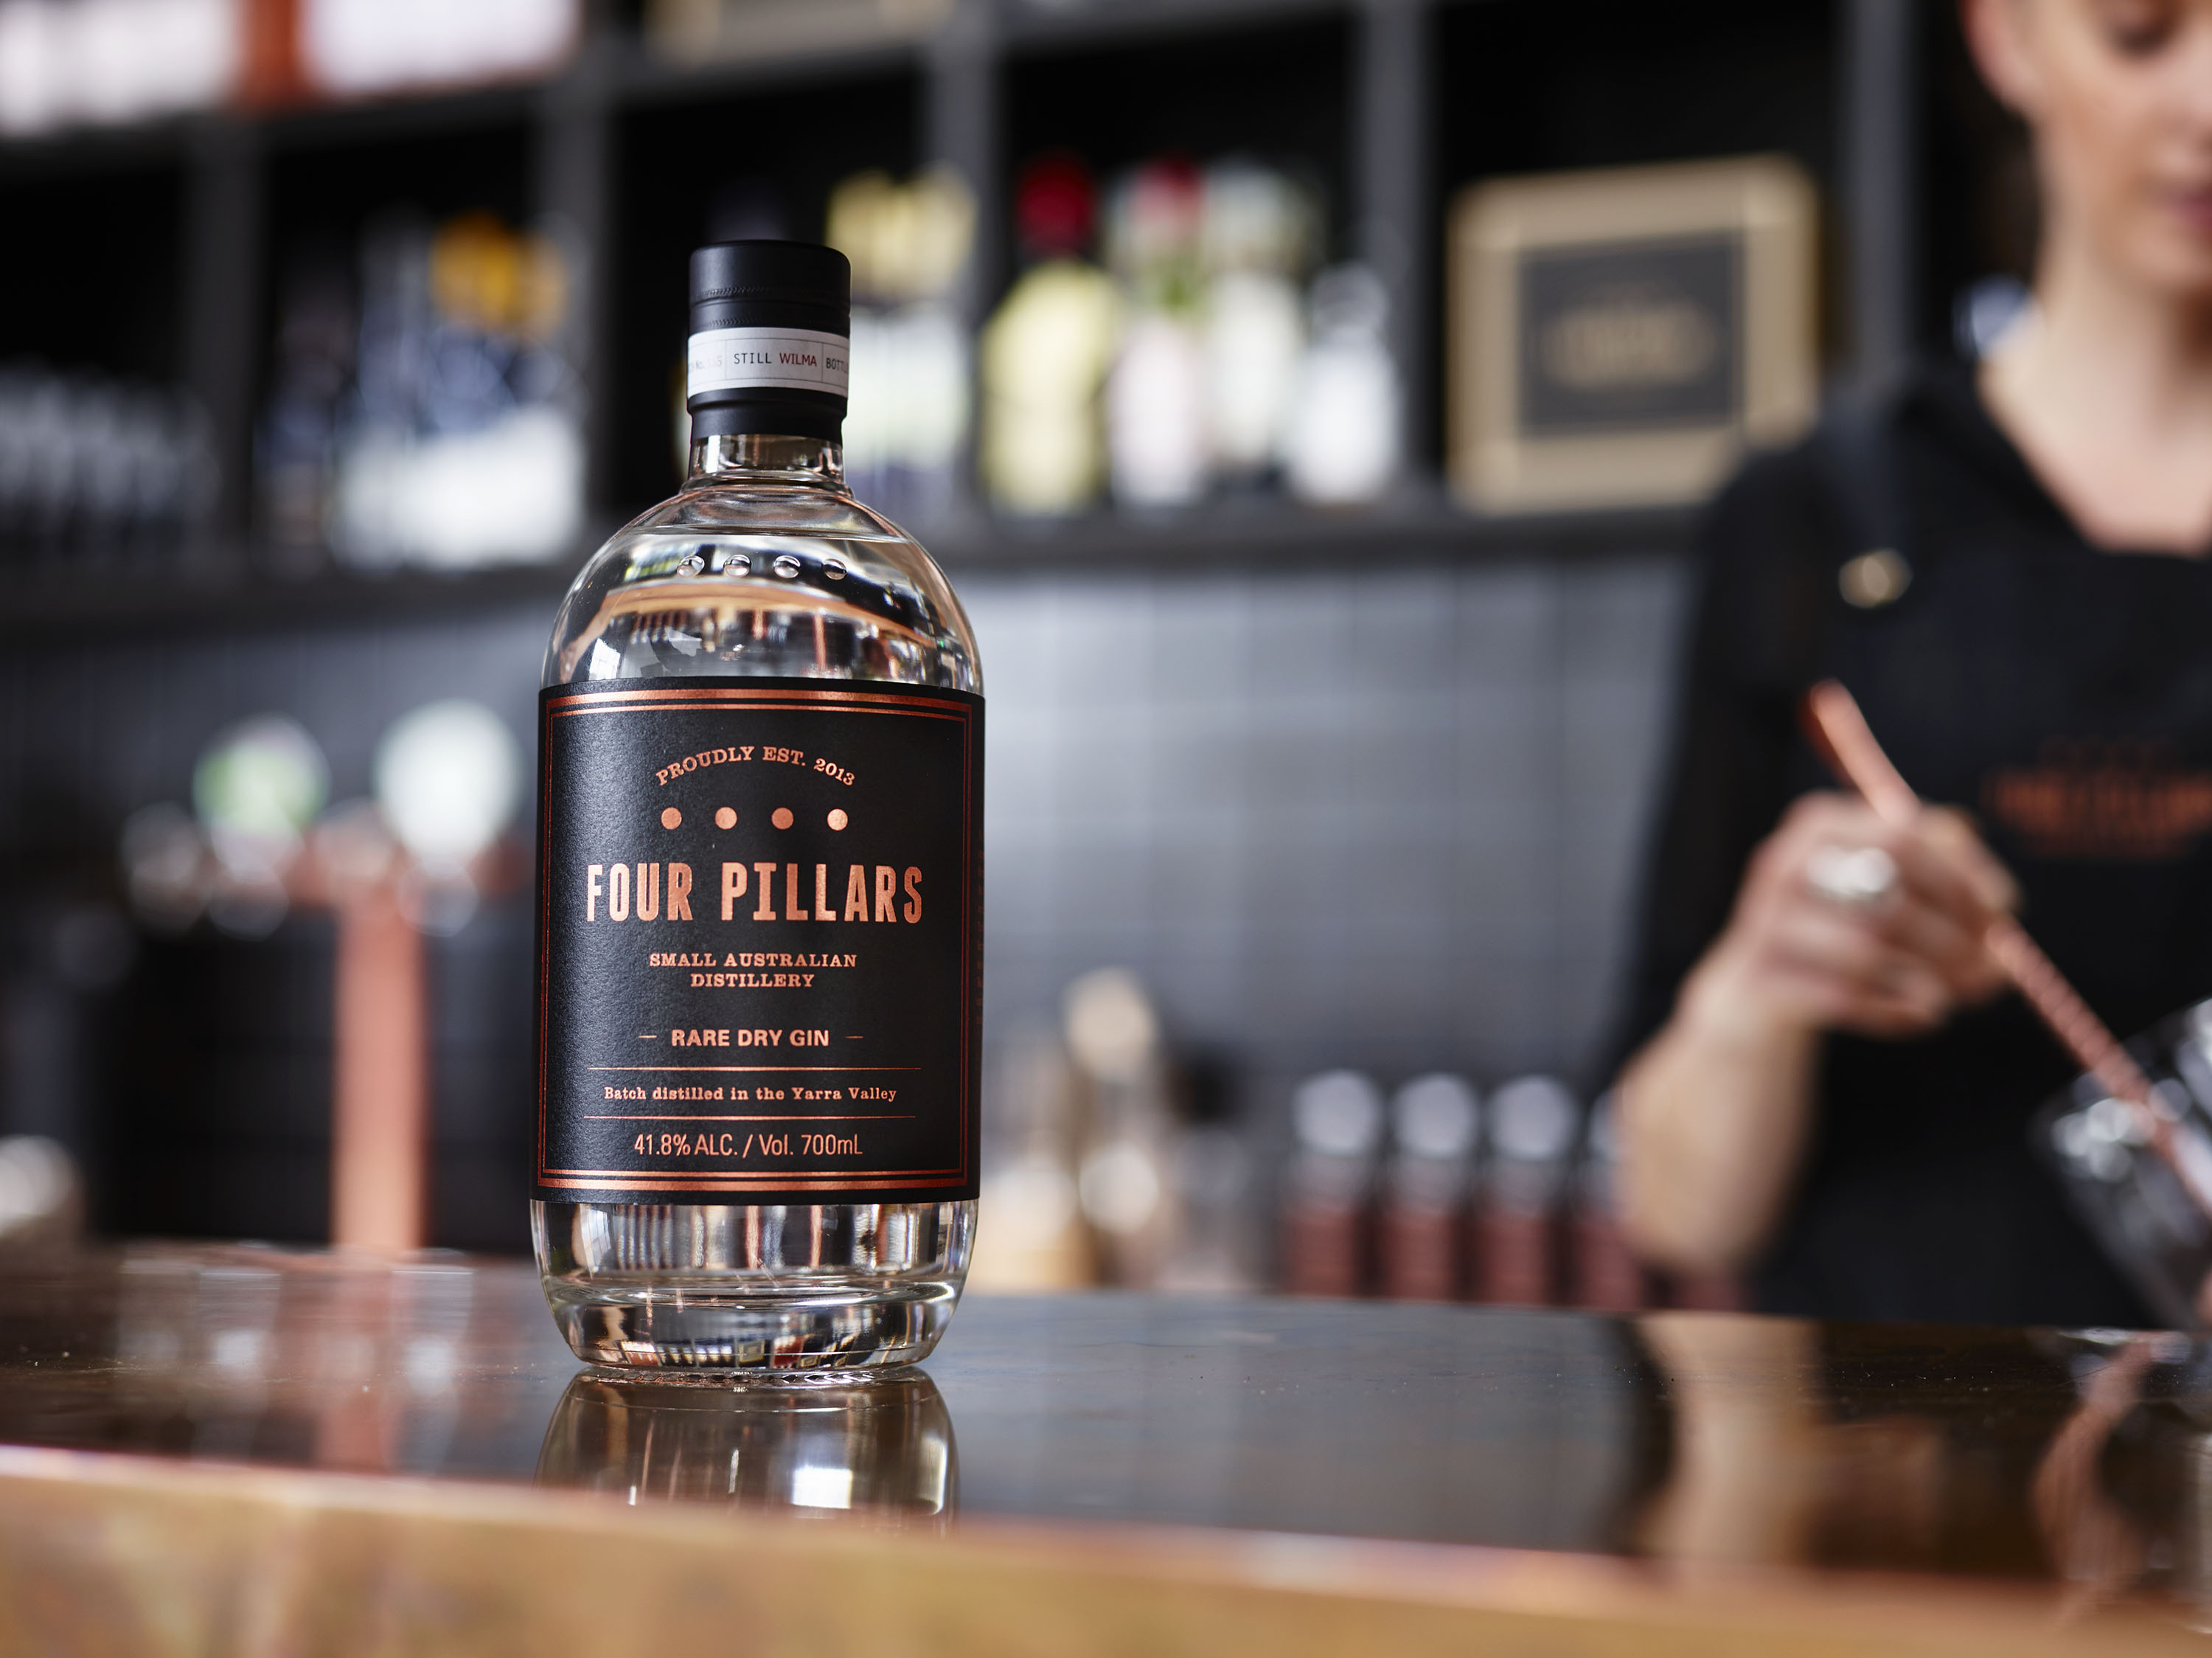 Four Pillars Gin: A Brand Experience To Aspire To